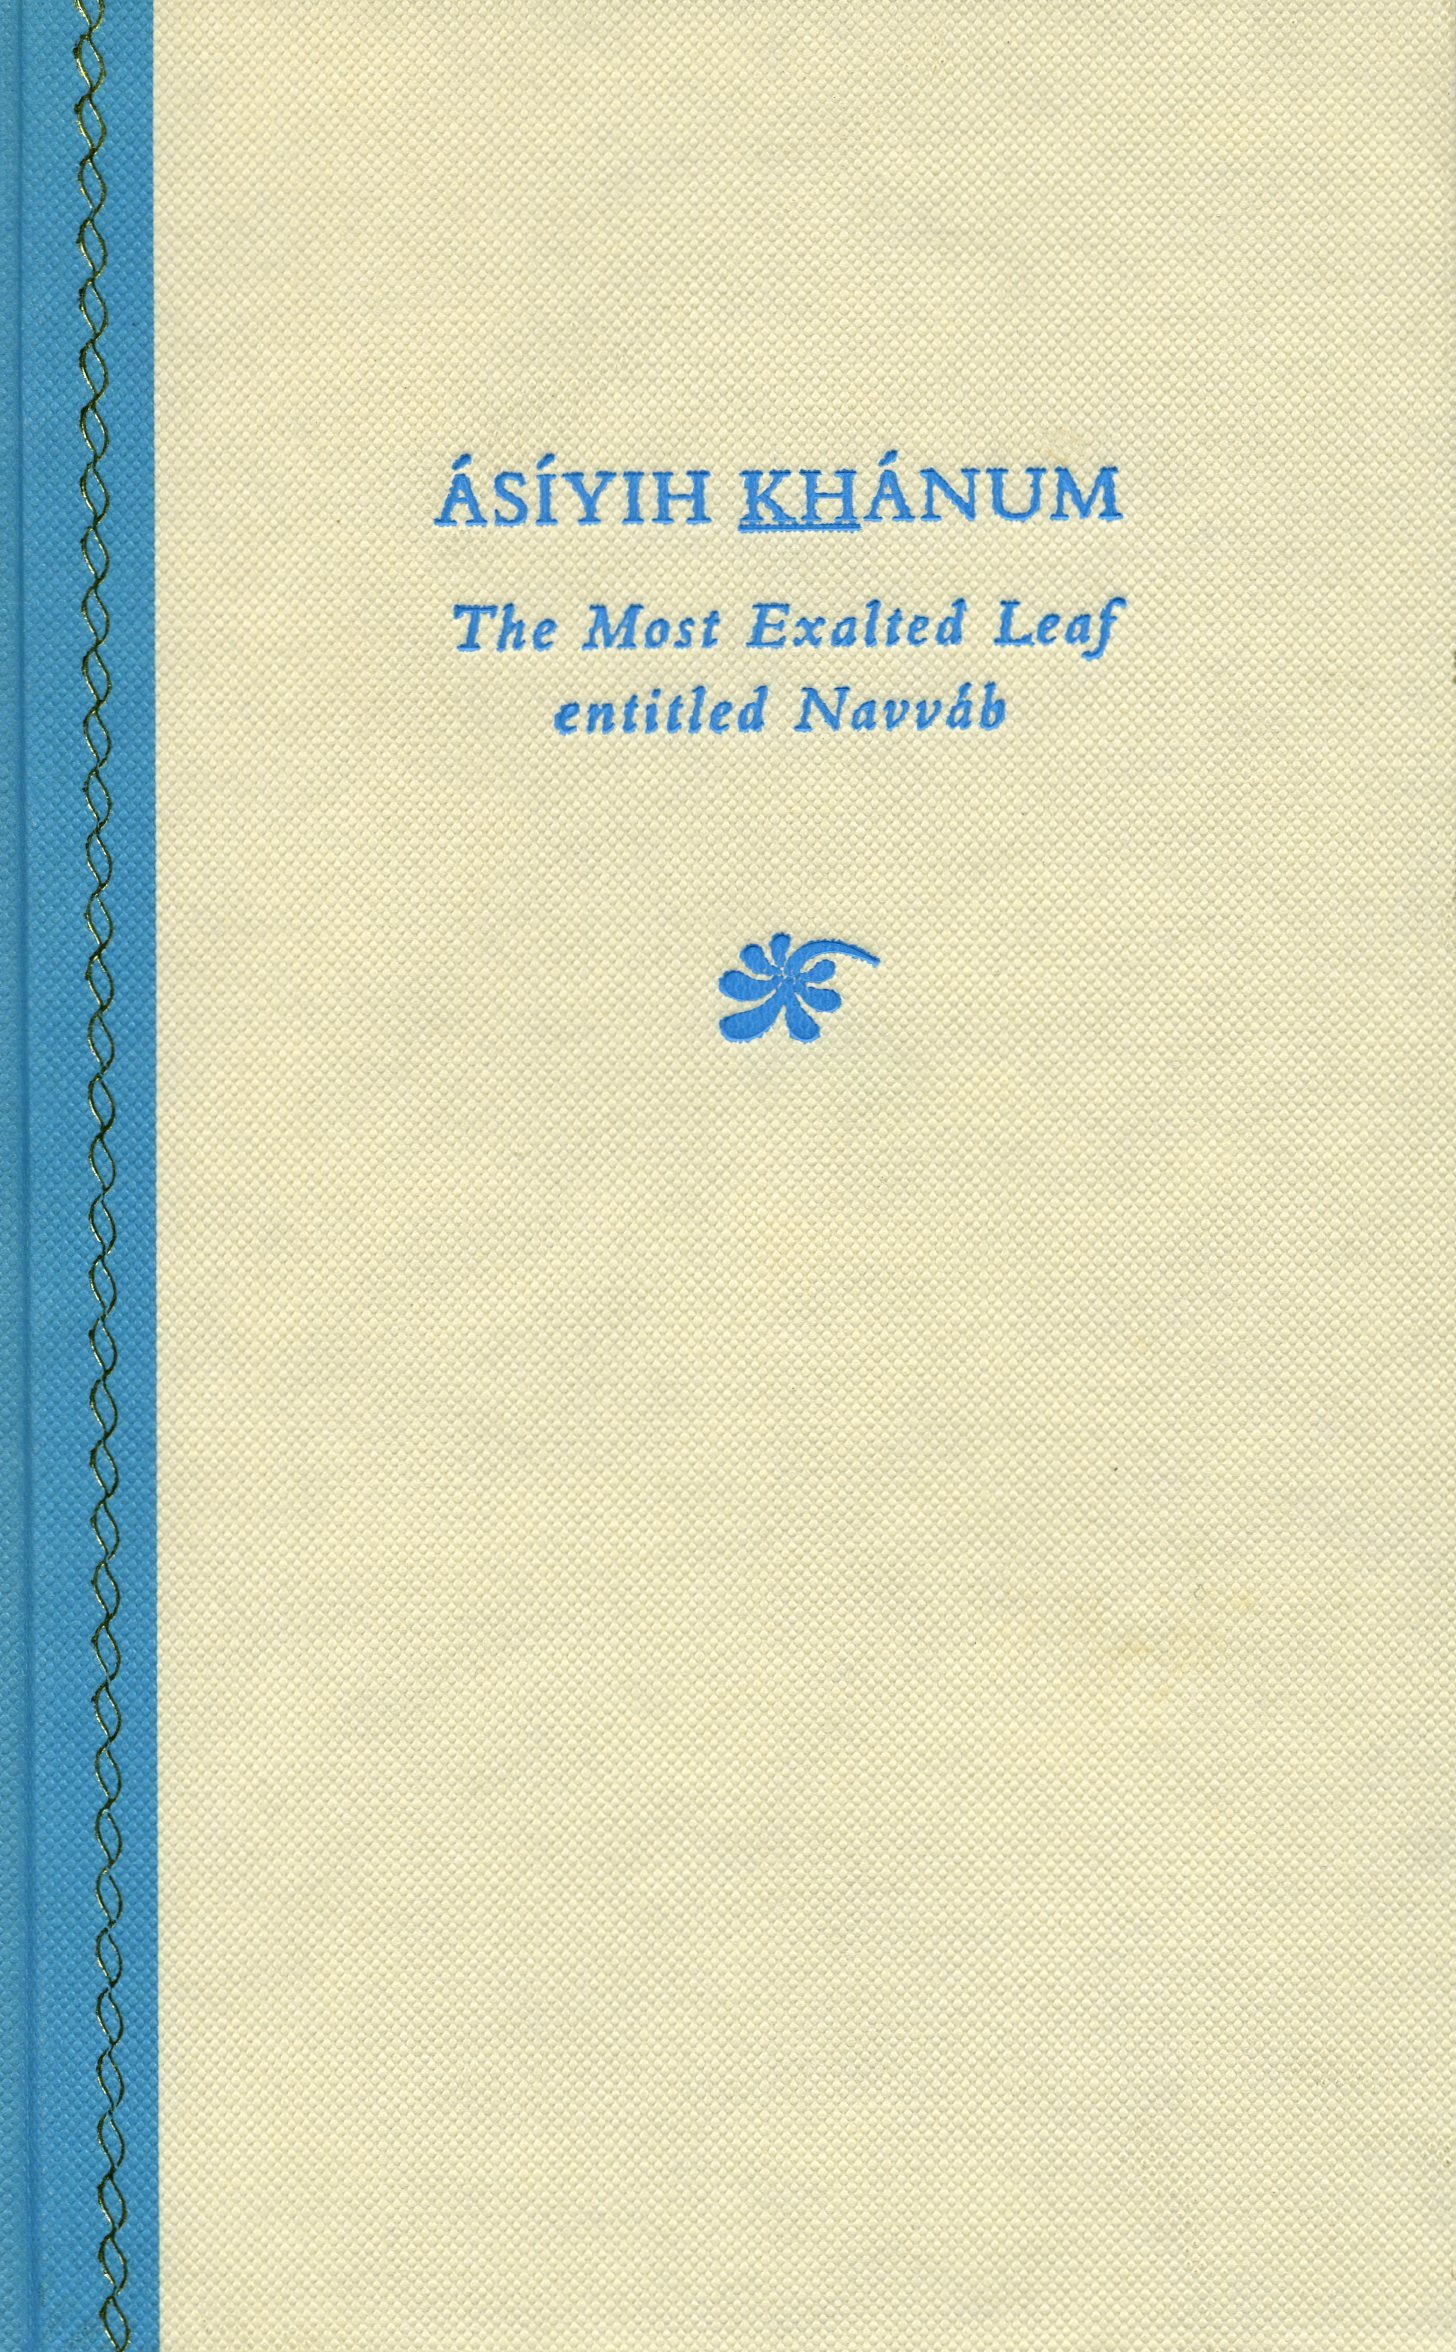 book asiyih khanum the most exalted leaf blueridge bah aacute iacute cluster a biographical essay of the wife of bahaacute u llaacuteh the founder of the bahaacute iacute faith and mother of abdu l bahaacute the centre of bahaacute u llaacuteh s covenant